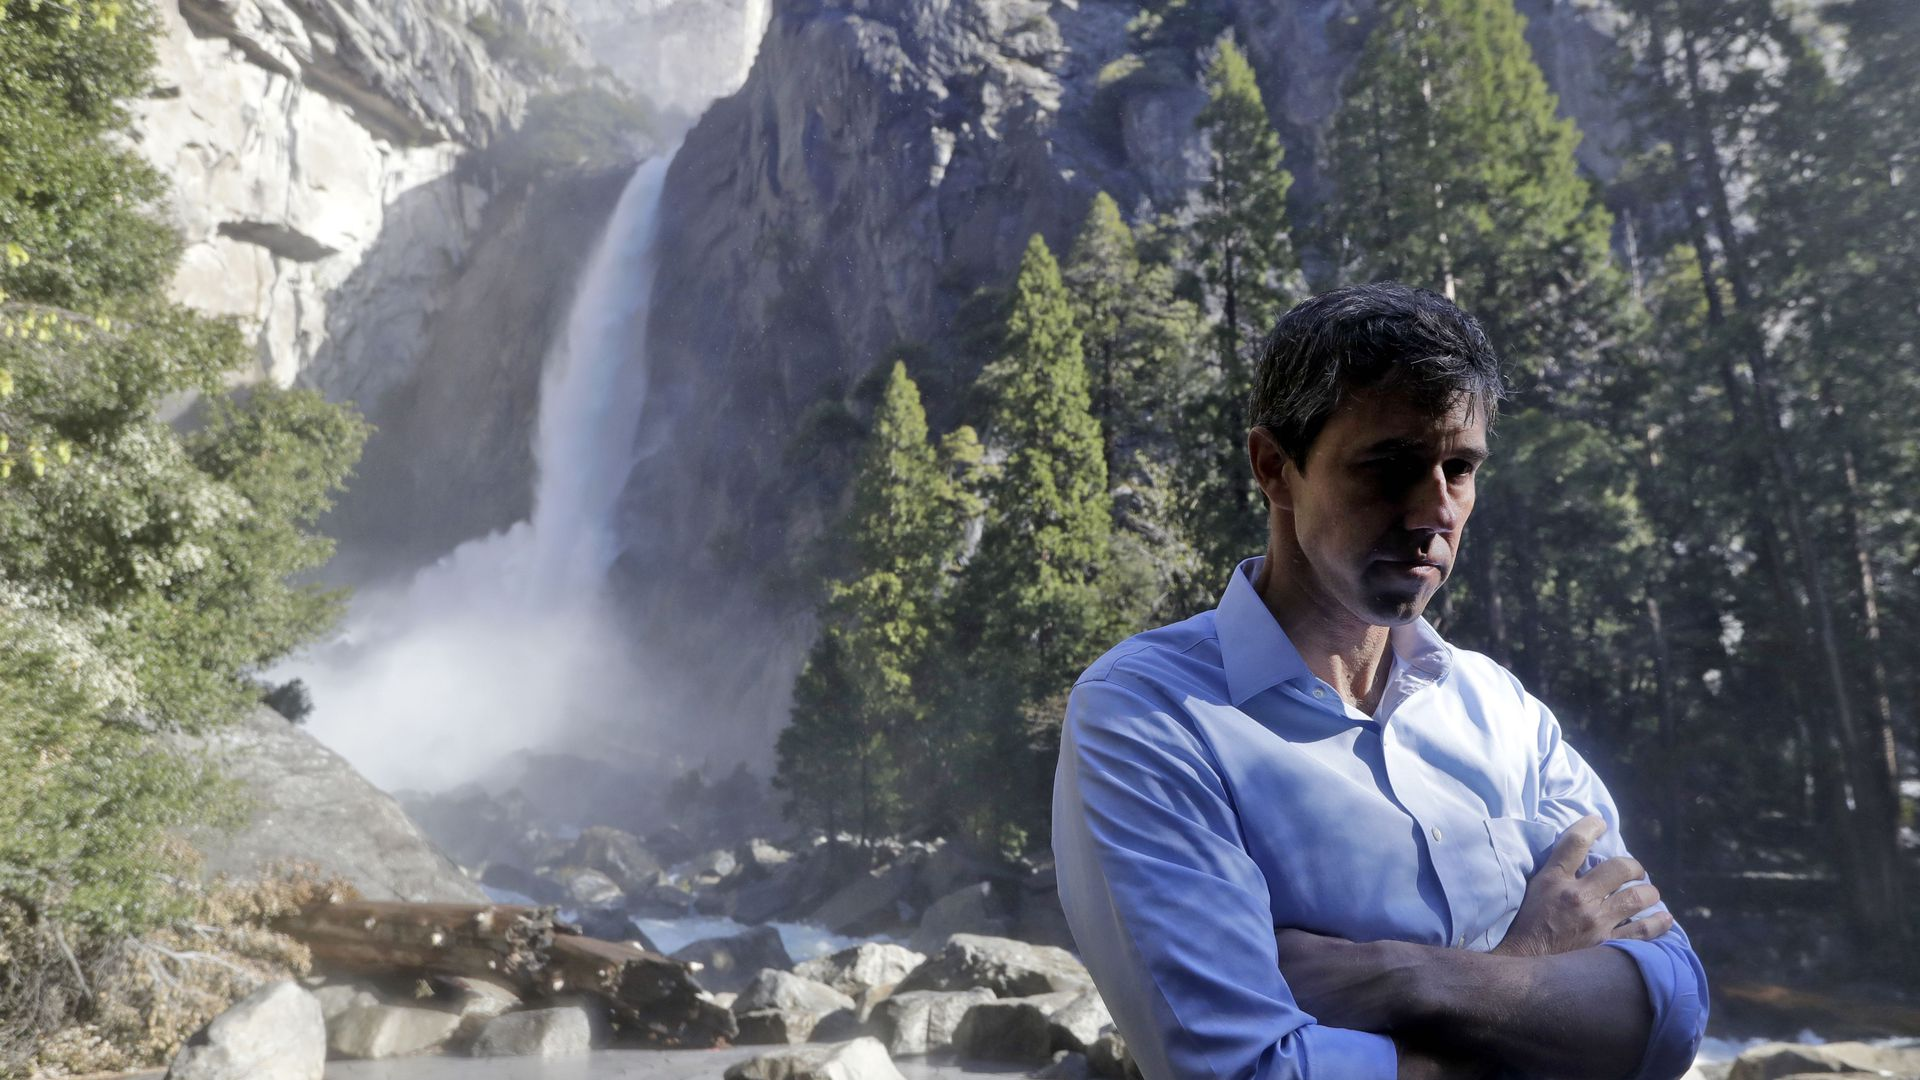 Beto O'Rourke at Yosemite